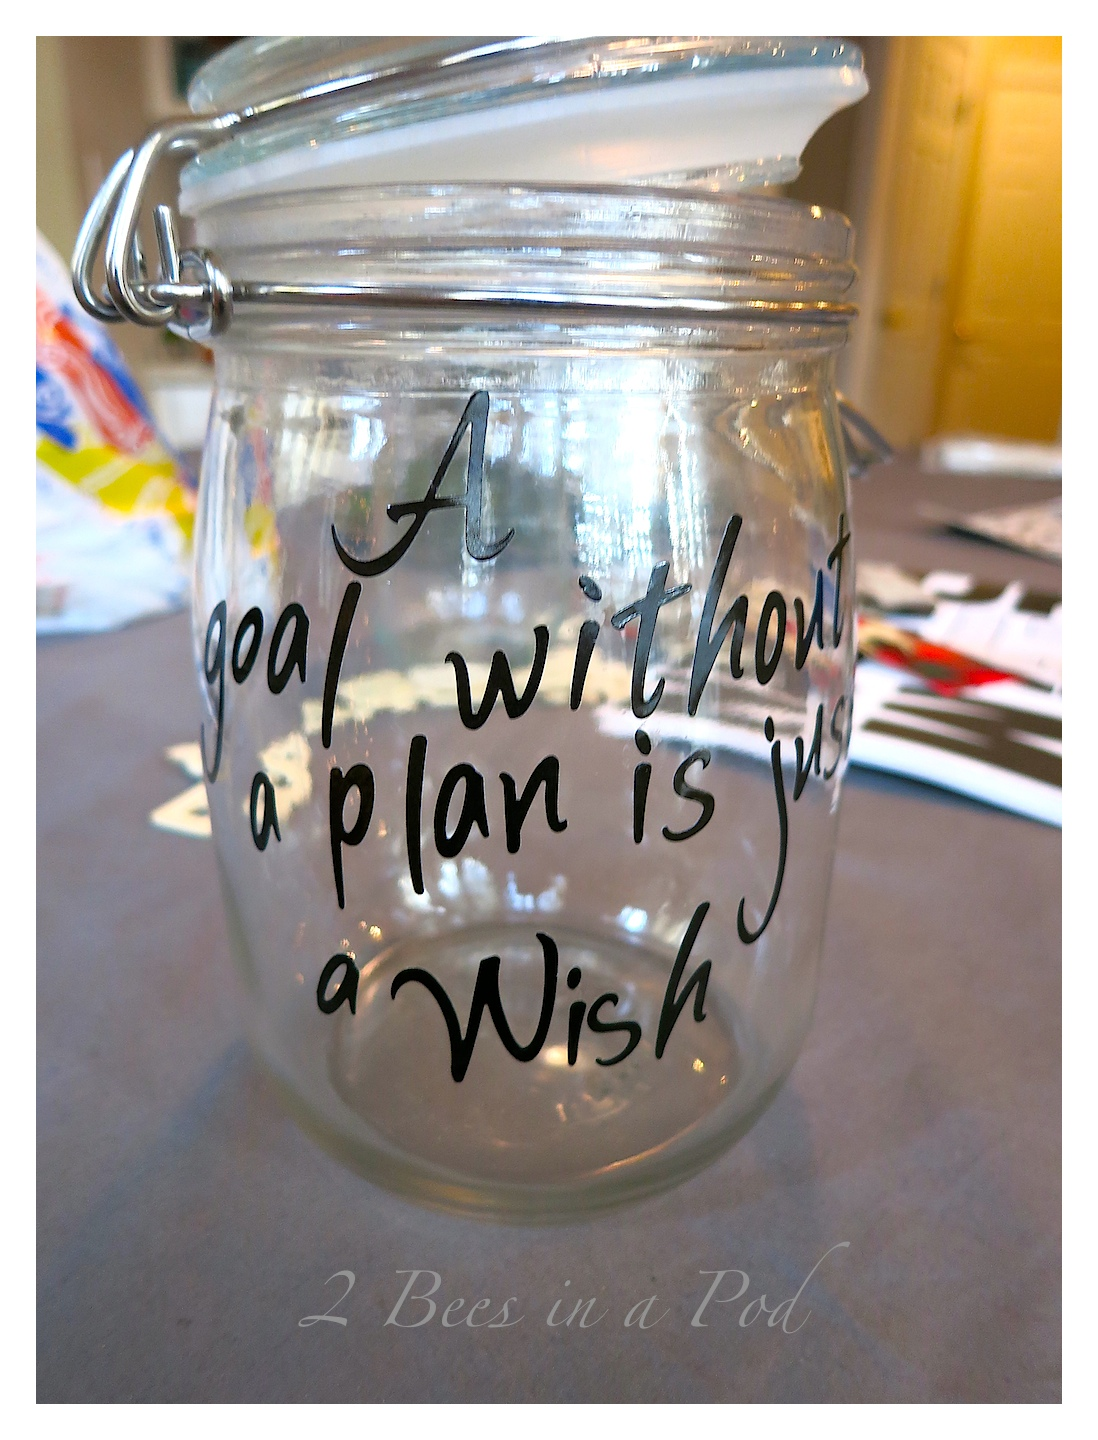 Quotes Jar Rememberlutions Jar And Update  2 Bees In A Pod